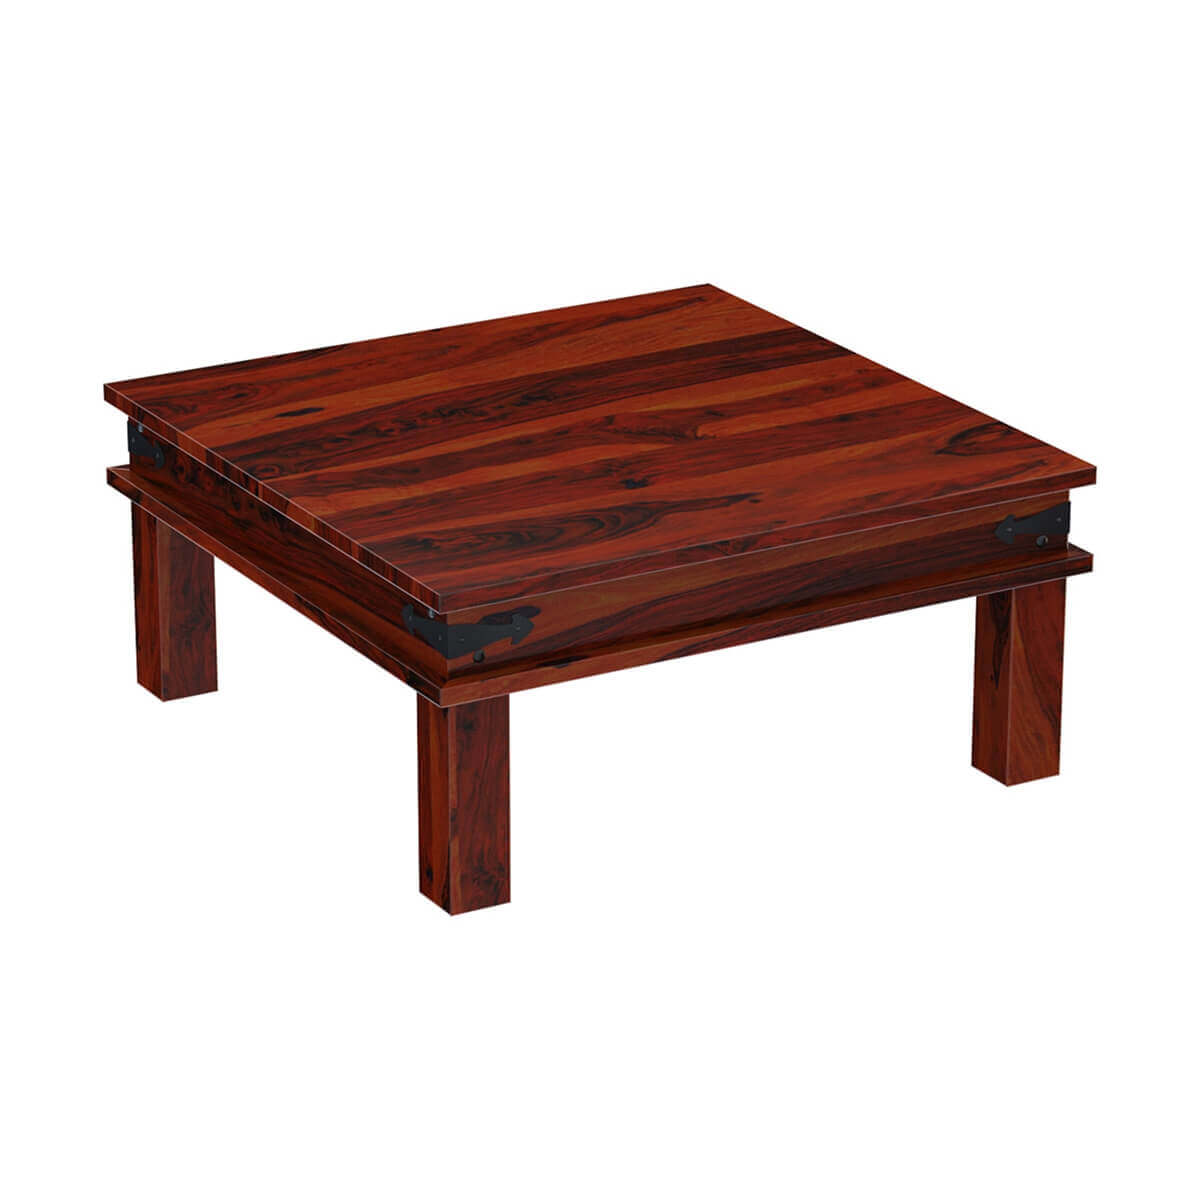 Altamont transitional solid wood square coffee table for Large wood coffee table square